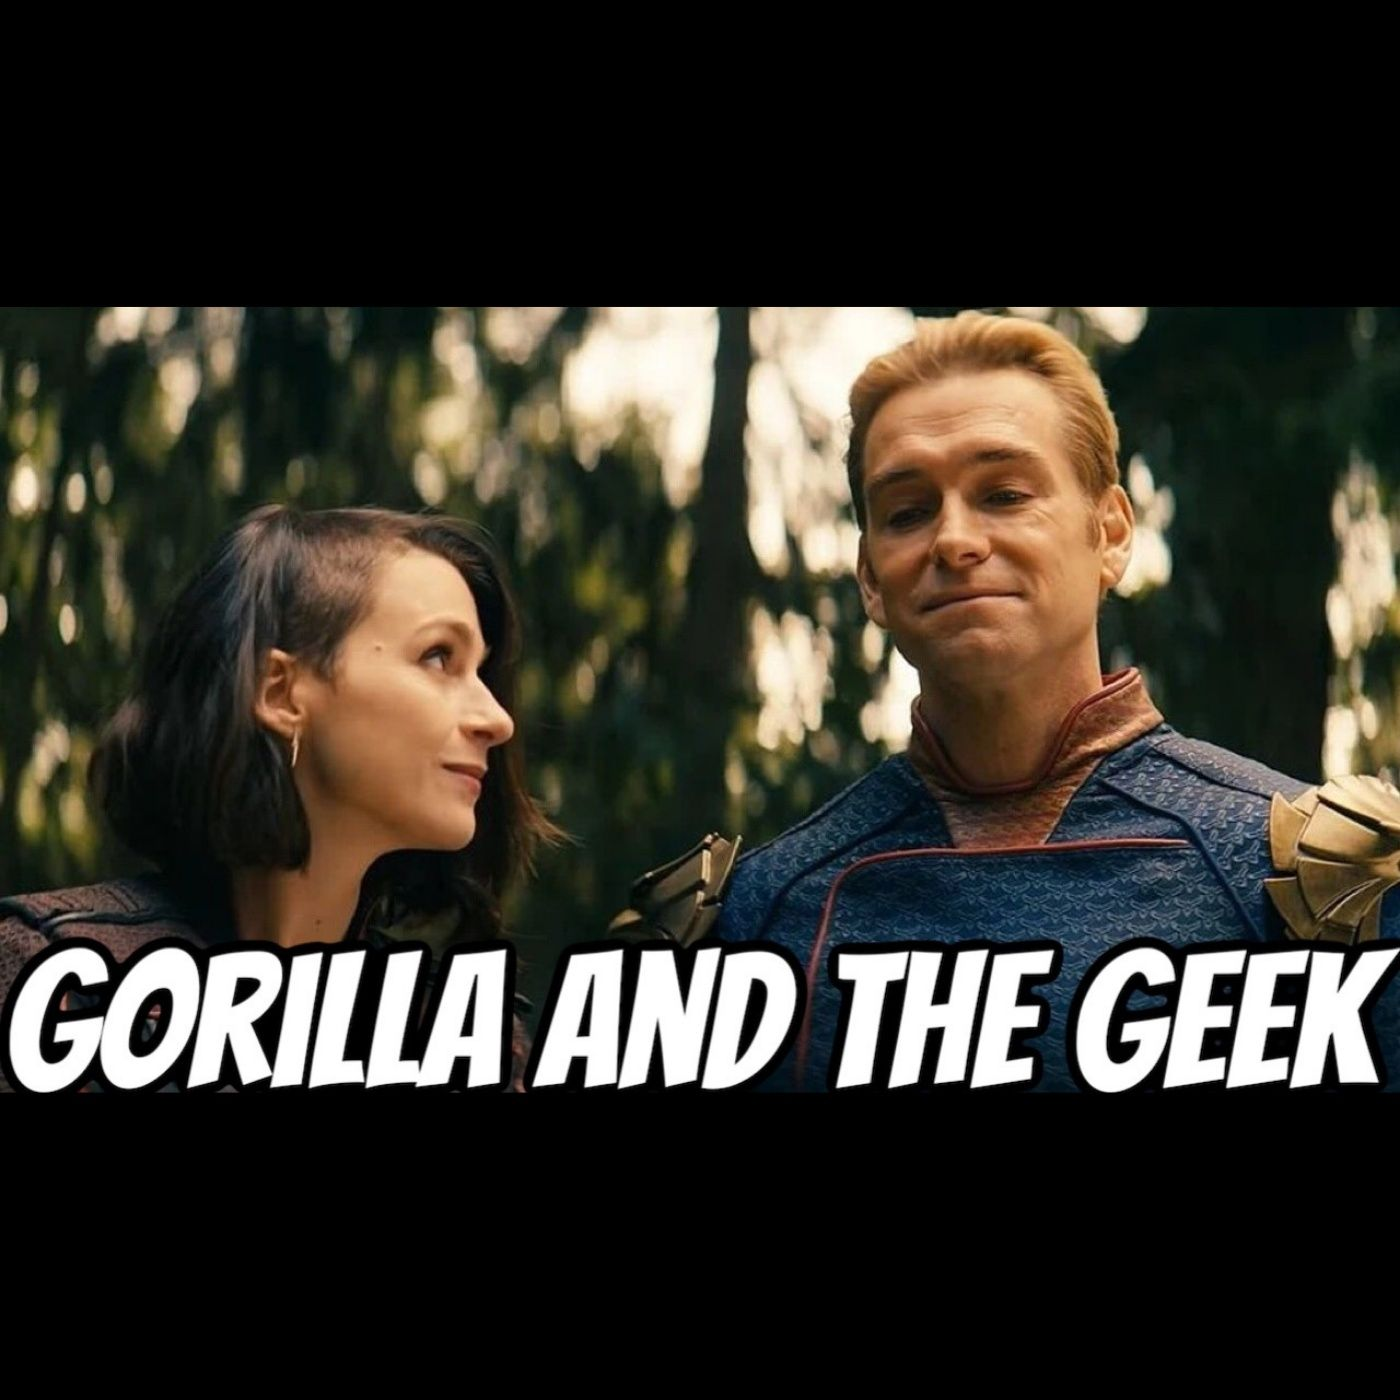 The Boys Season 2 Discussion - Gorilla and The Geek Episode 30